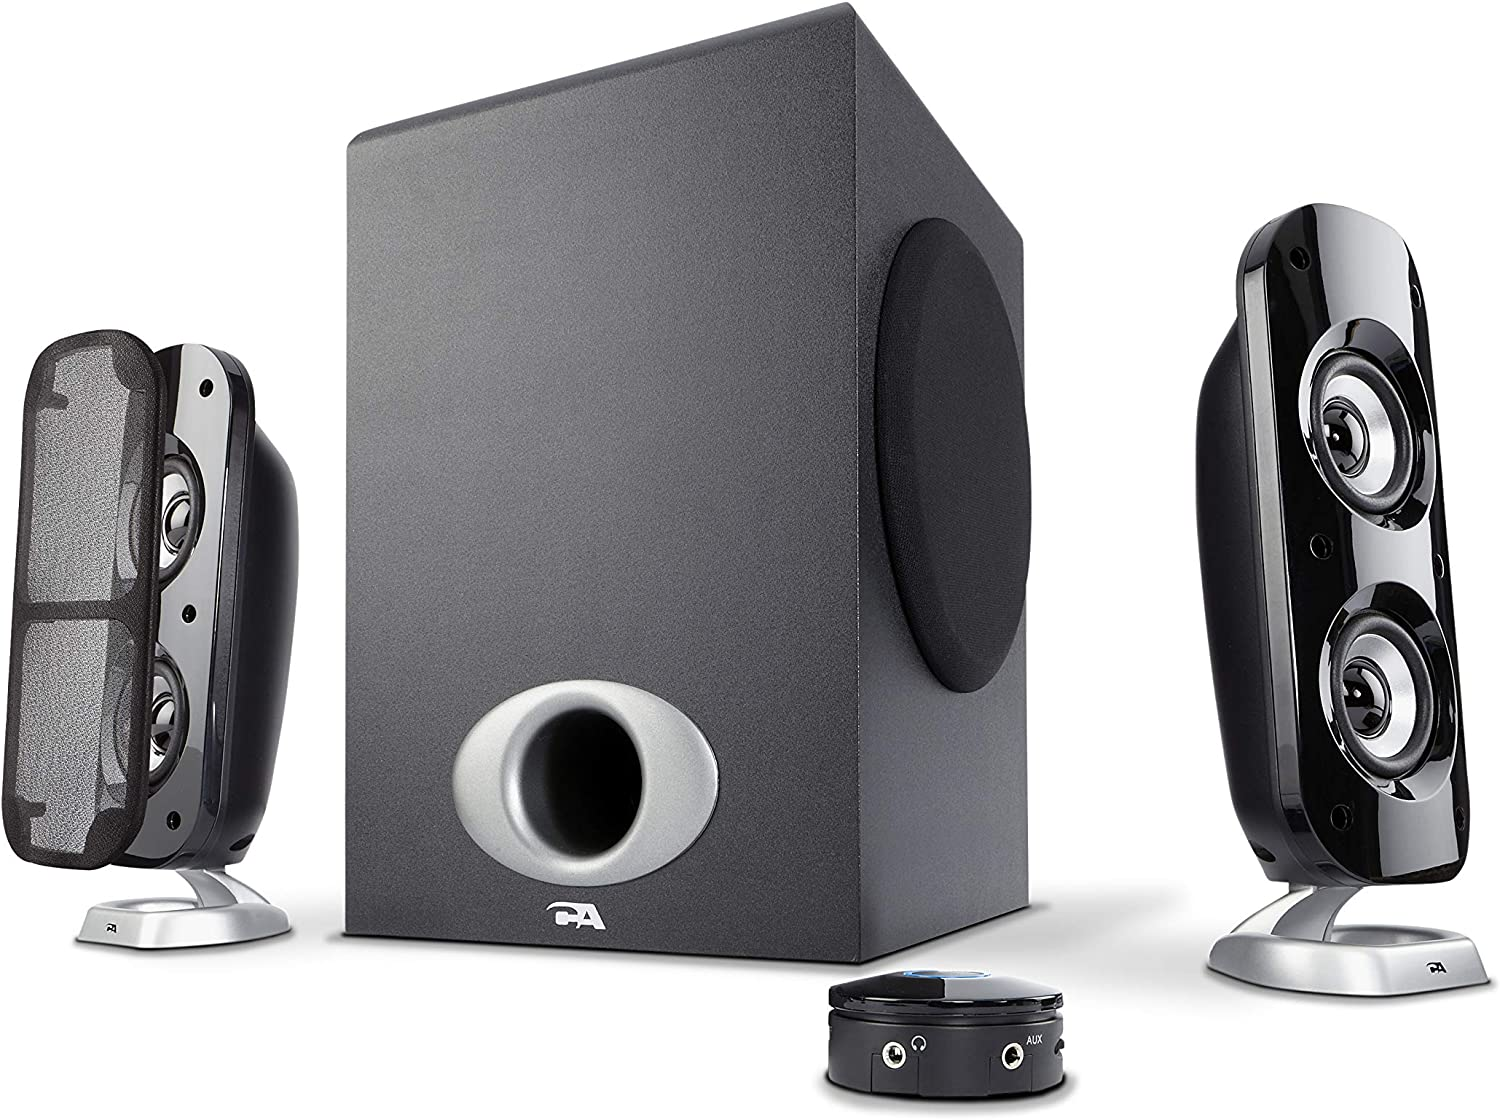 Great for and Cyber Acoustics 2.1 Subwoofer Speaker System with 18W of Power